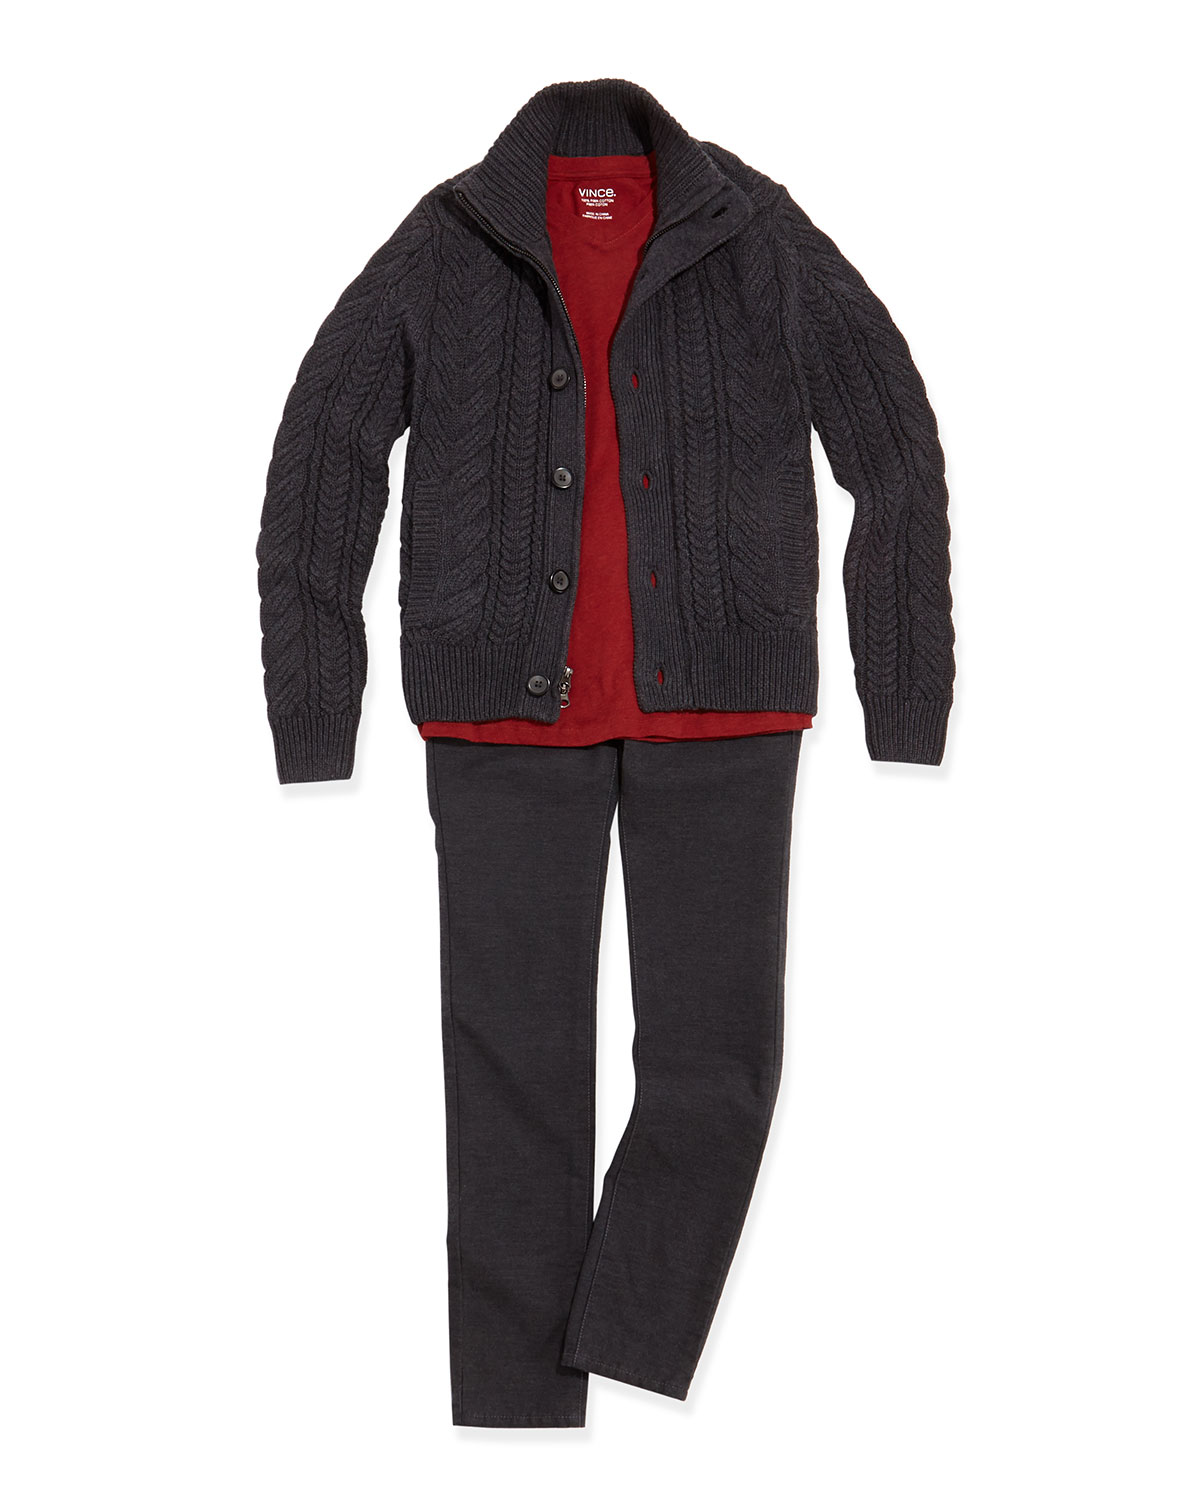 Boys' Mock-Neck Cable-Knit Cardigan, Favorite V-Neck Tee & Brushed Heathered Pants